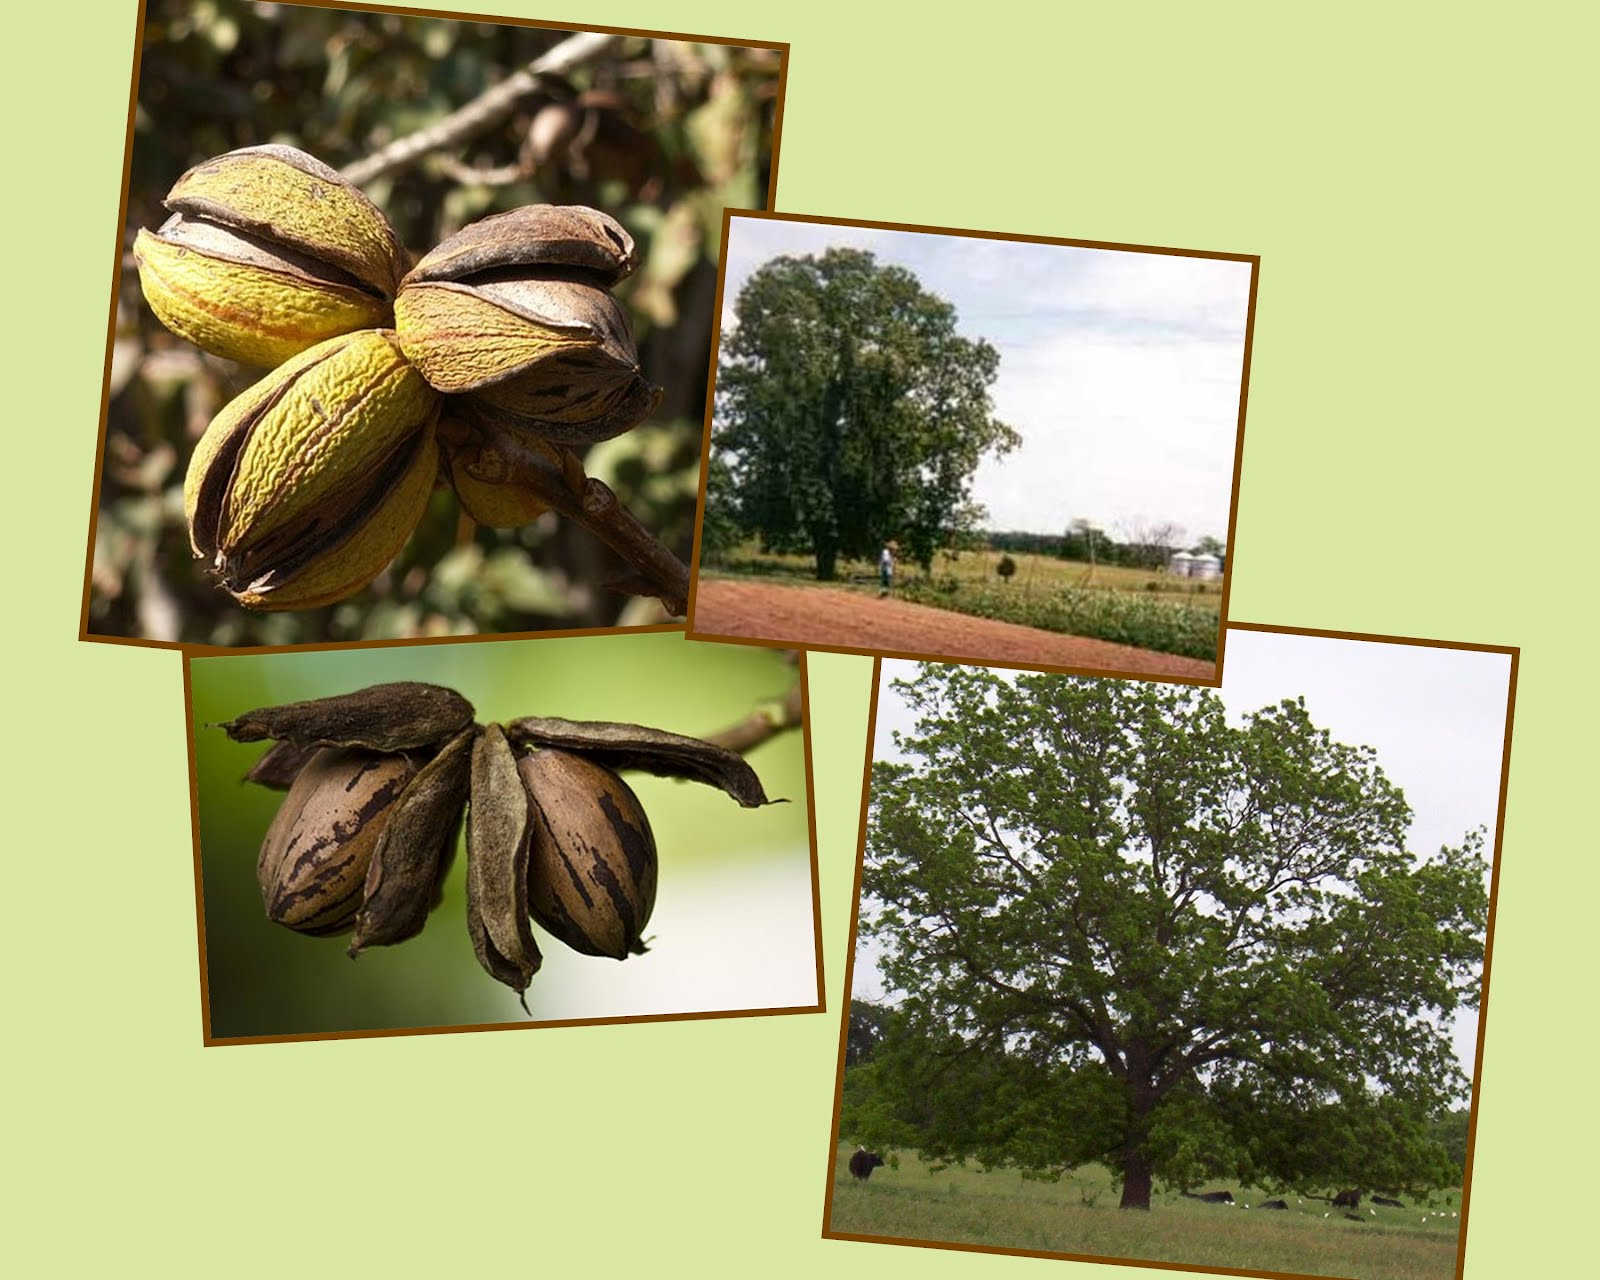 Pecan%2Btree%2Band%2Bnut%2B They were the first ones to cultivate the pecan tree.